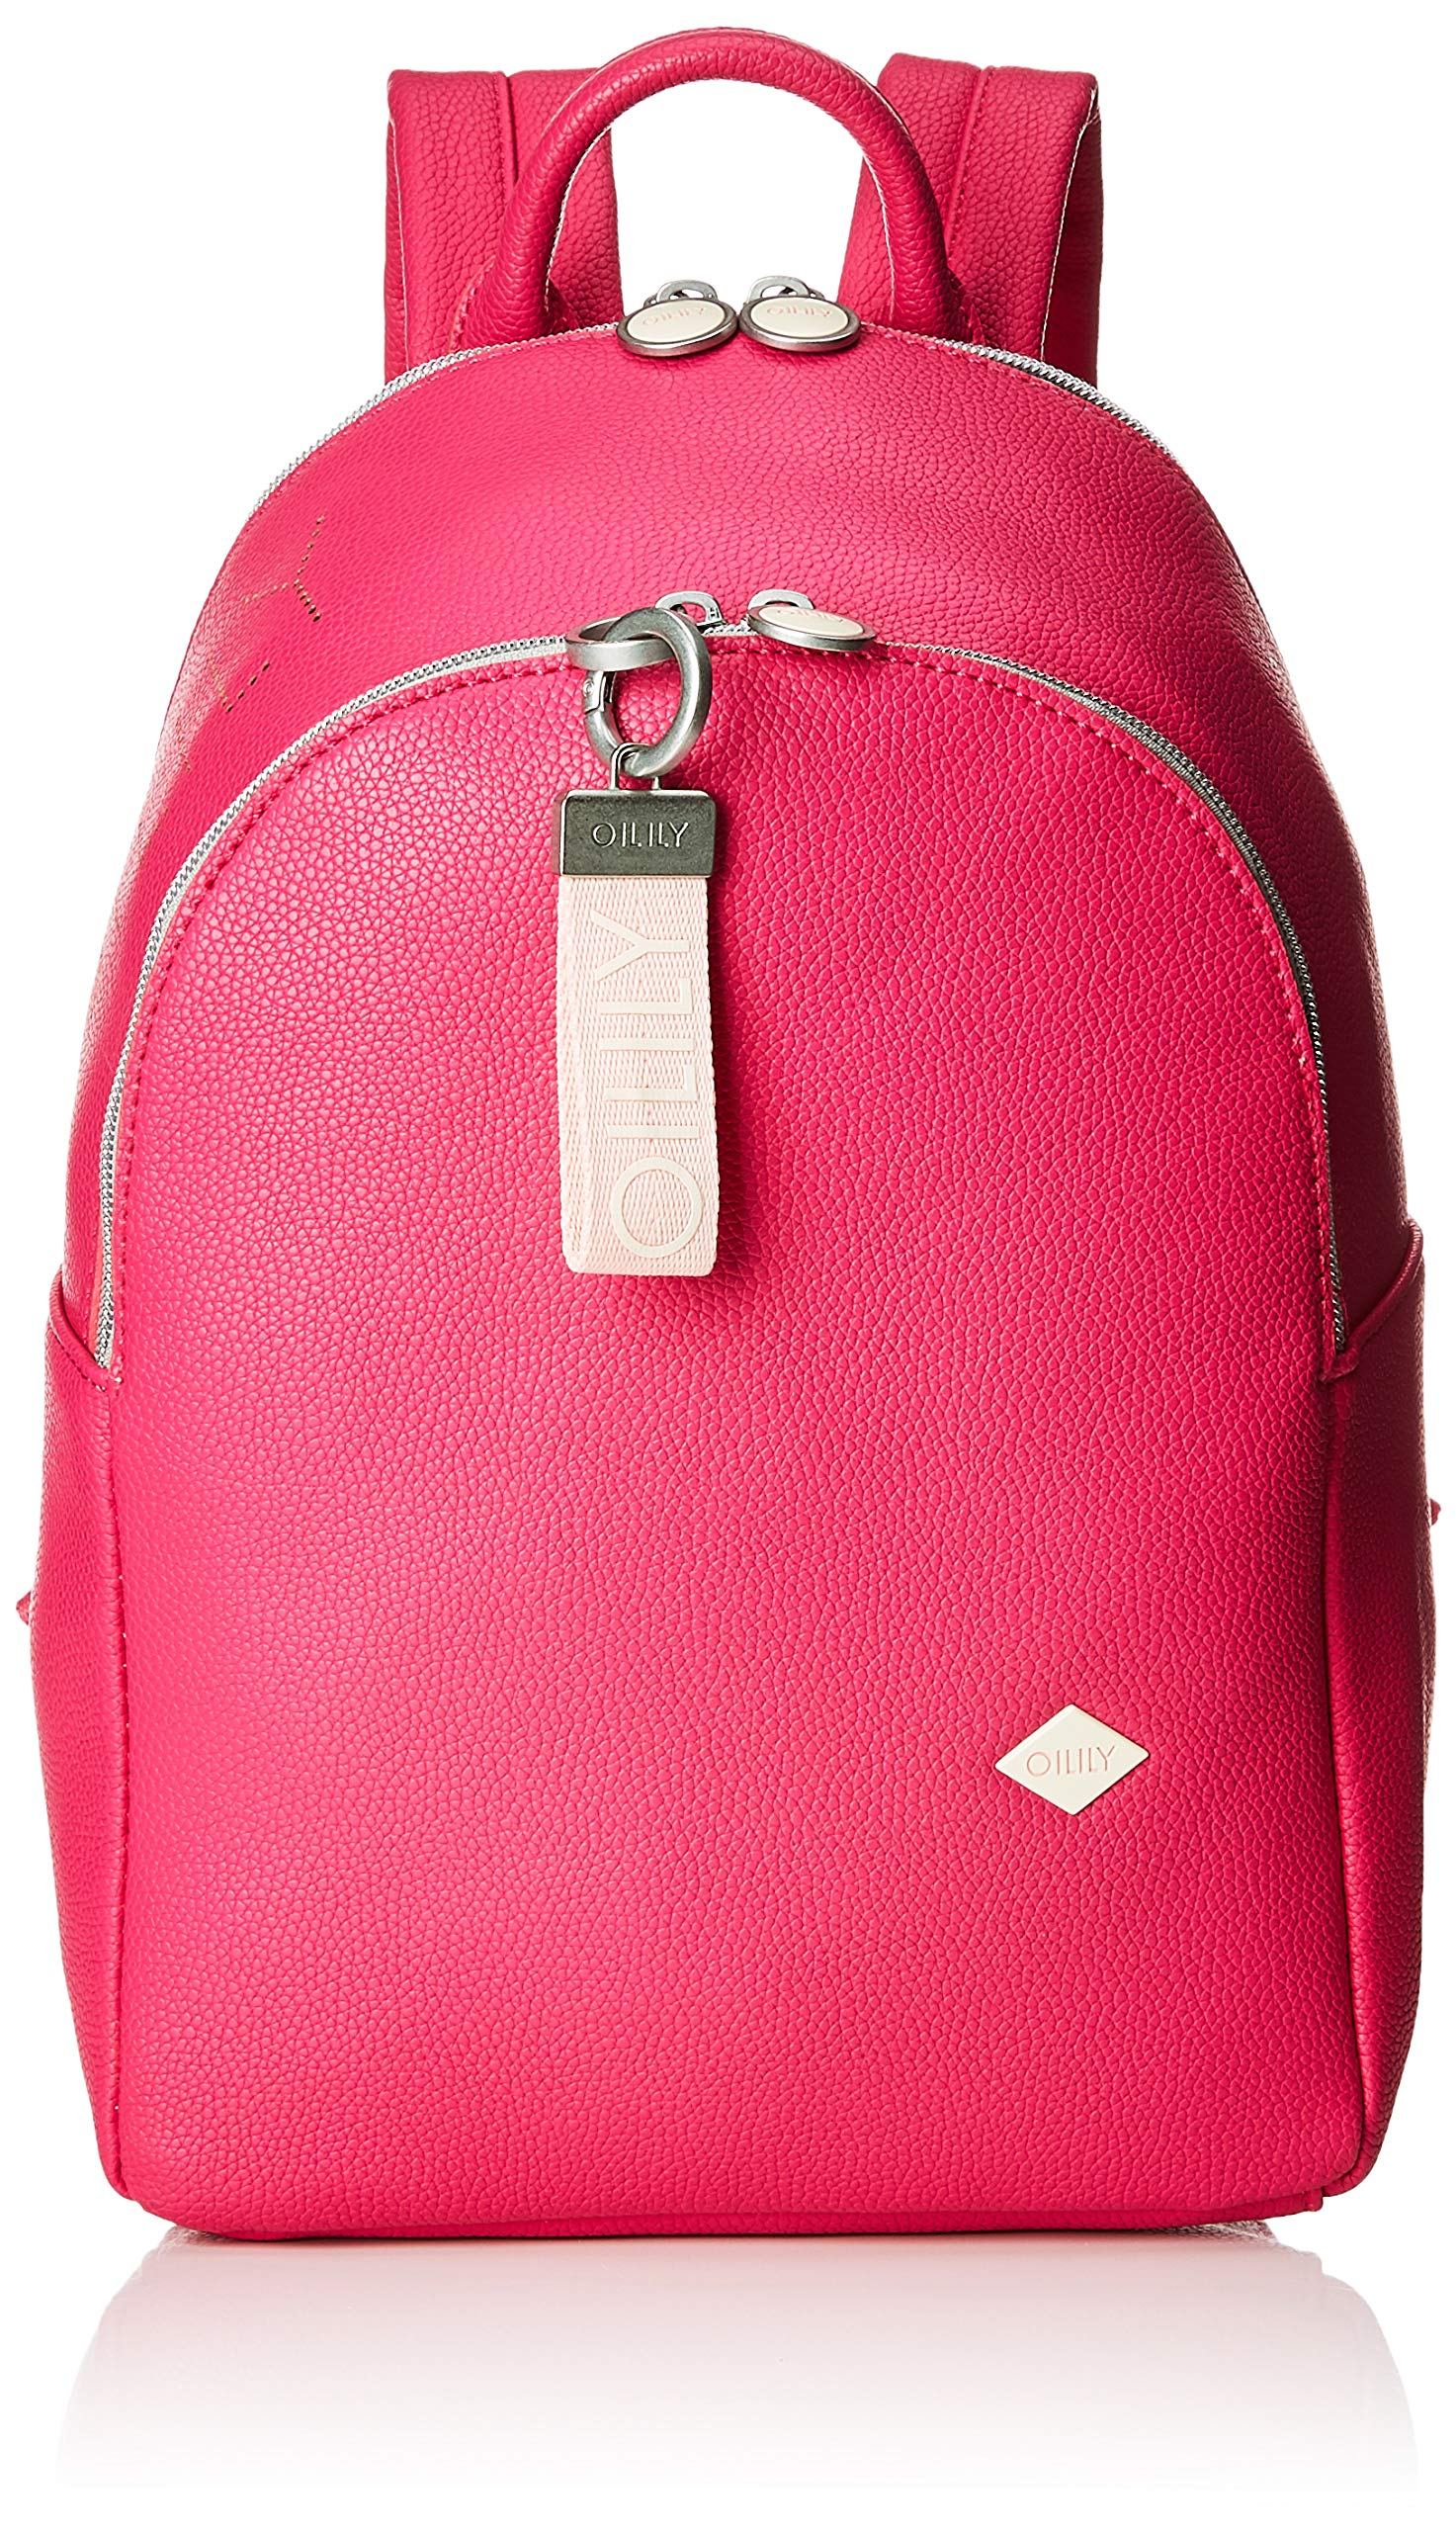 T Dos H MvzSacs 0 0x22 FemmeRosepinkpink13 Airy 0x33 Backpack Cmb X Oilily À 6fgyb7